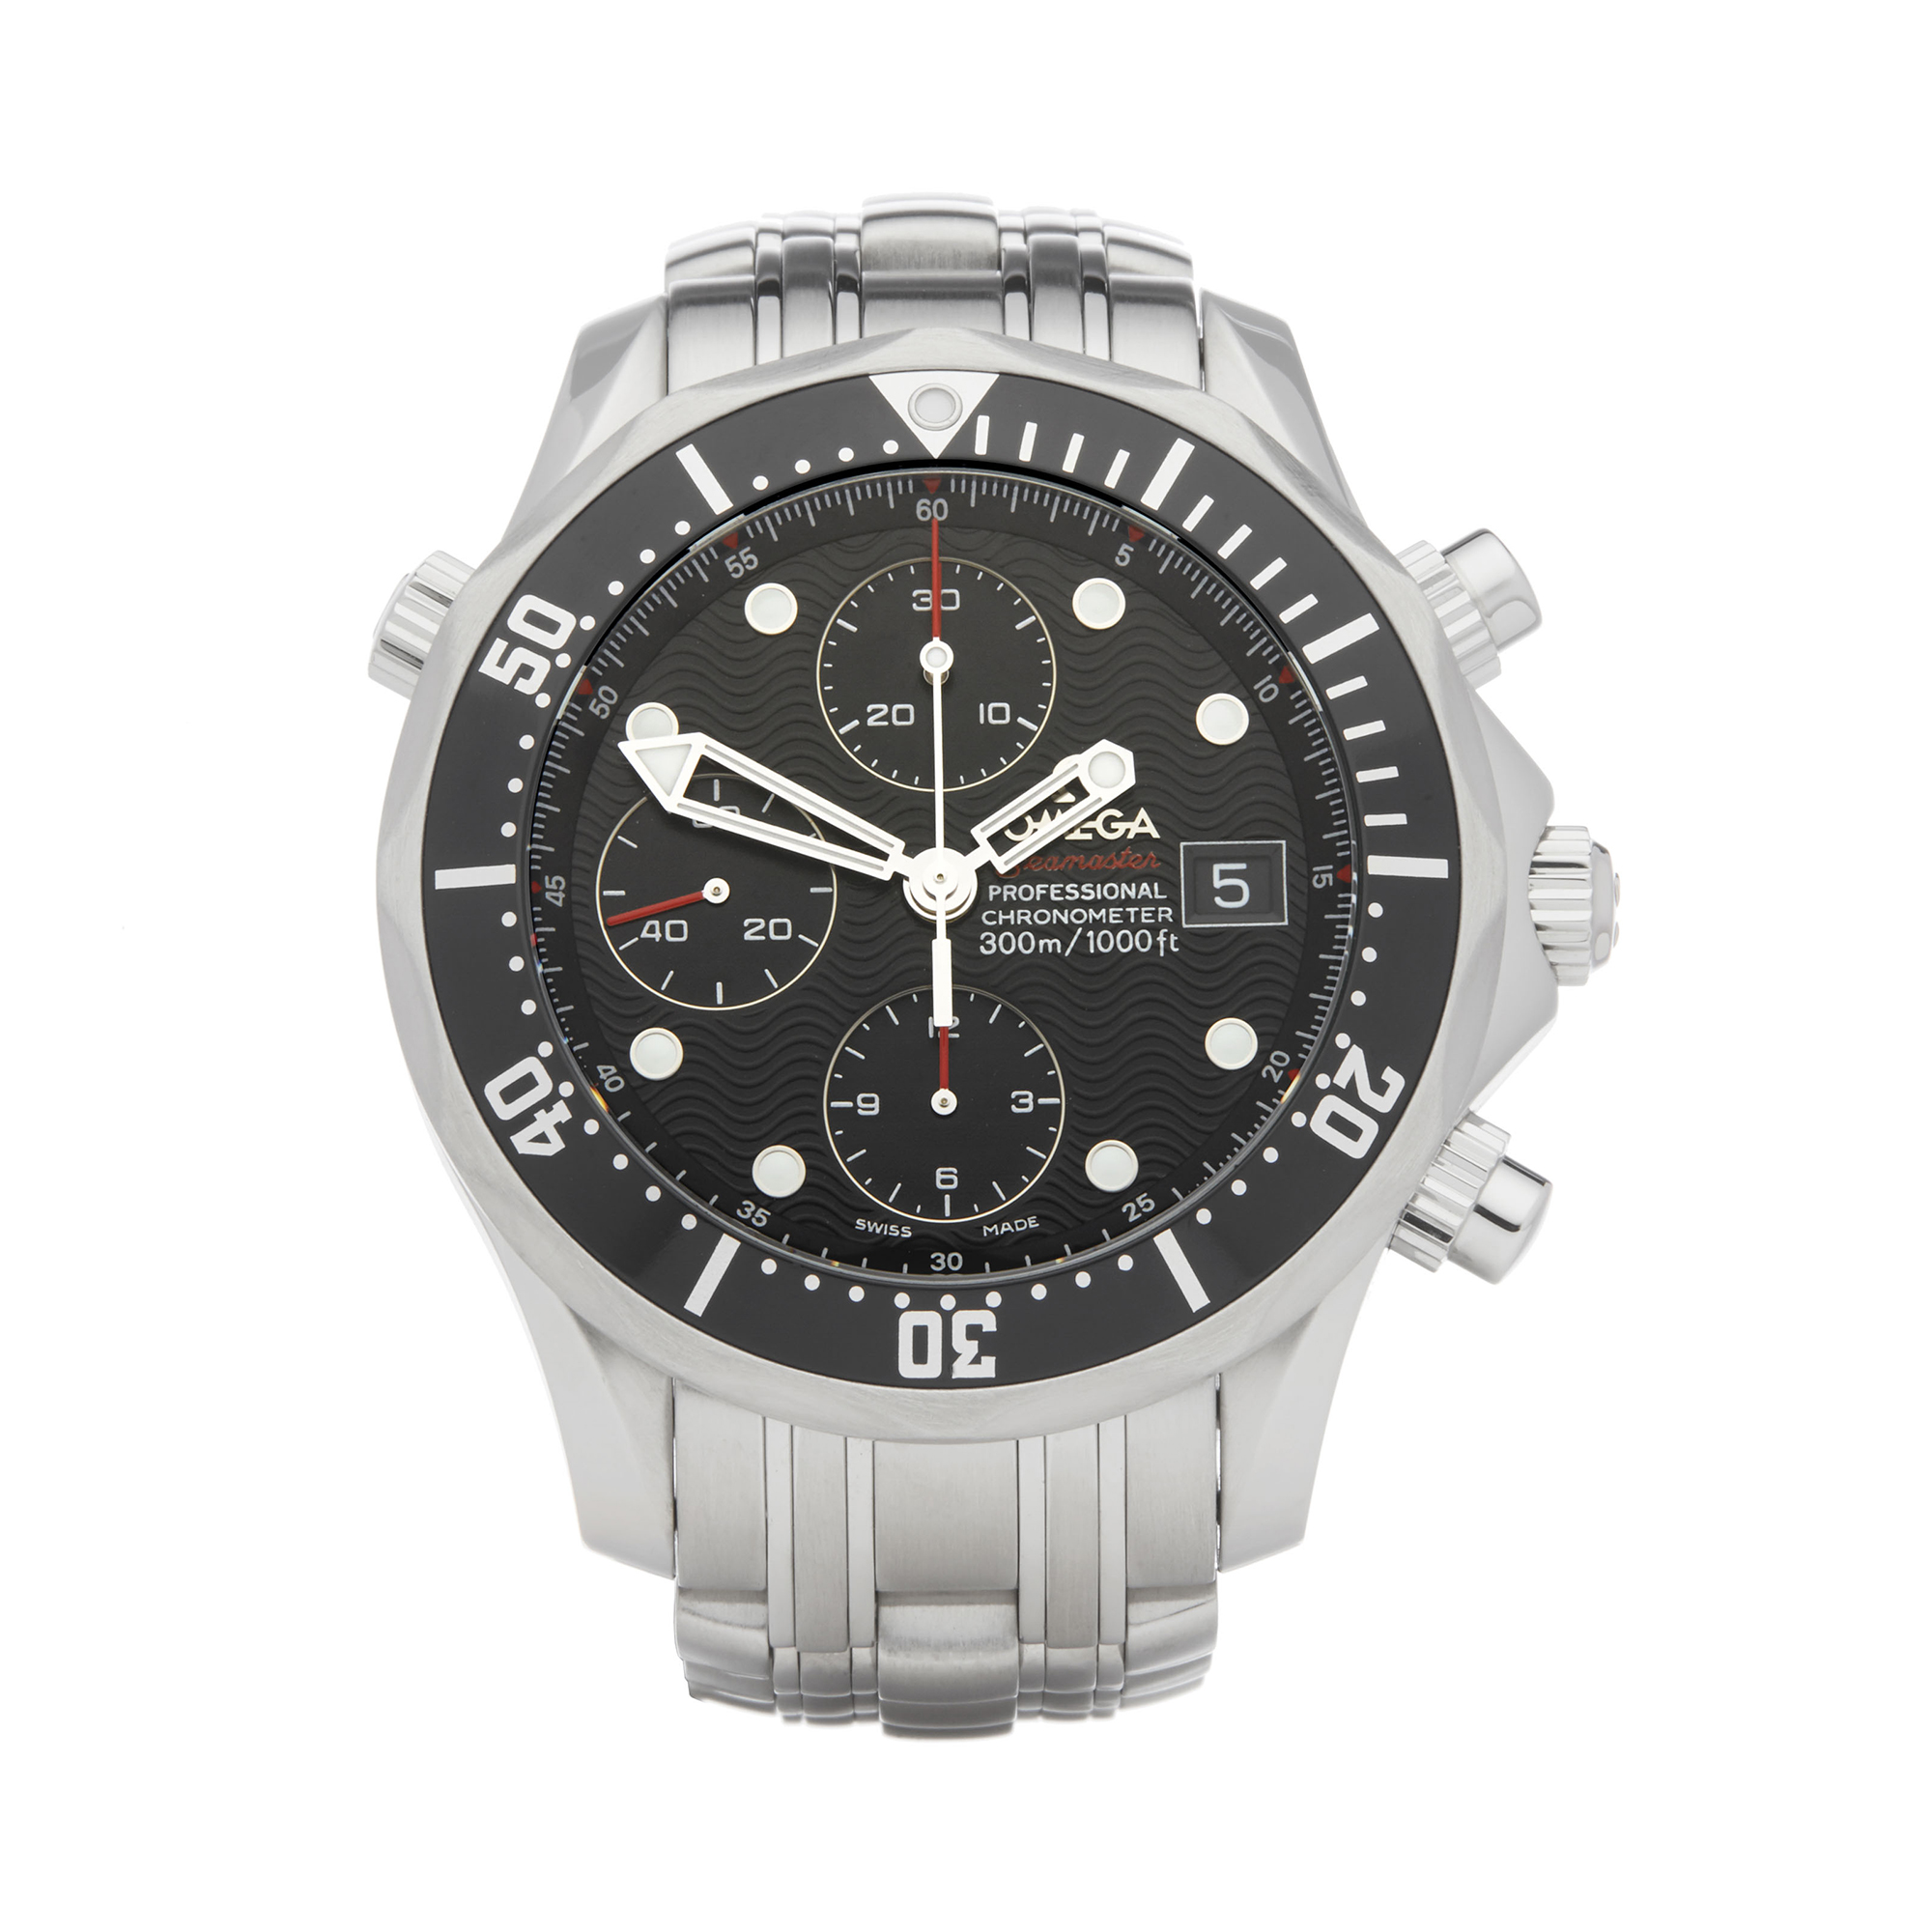 Omega Seamaster 0 213.30.42.40.01.001 Men Stainless Steel Chronograph Watch - Image 9 of 9